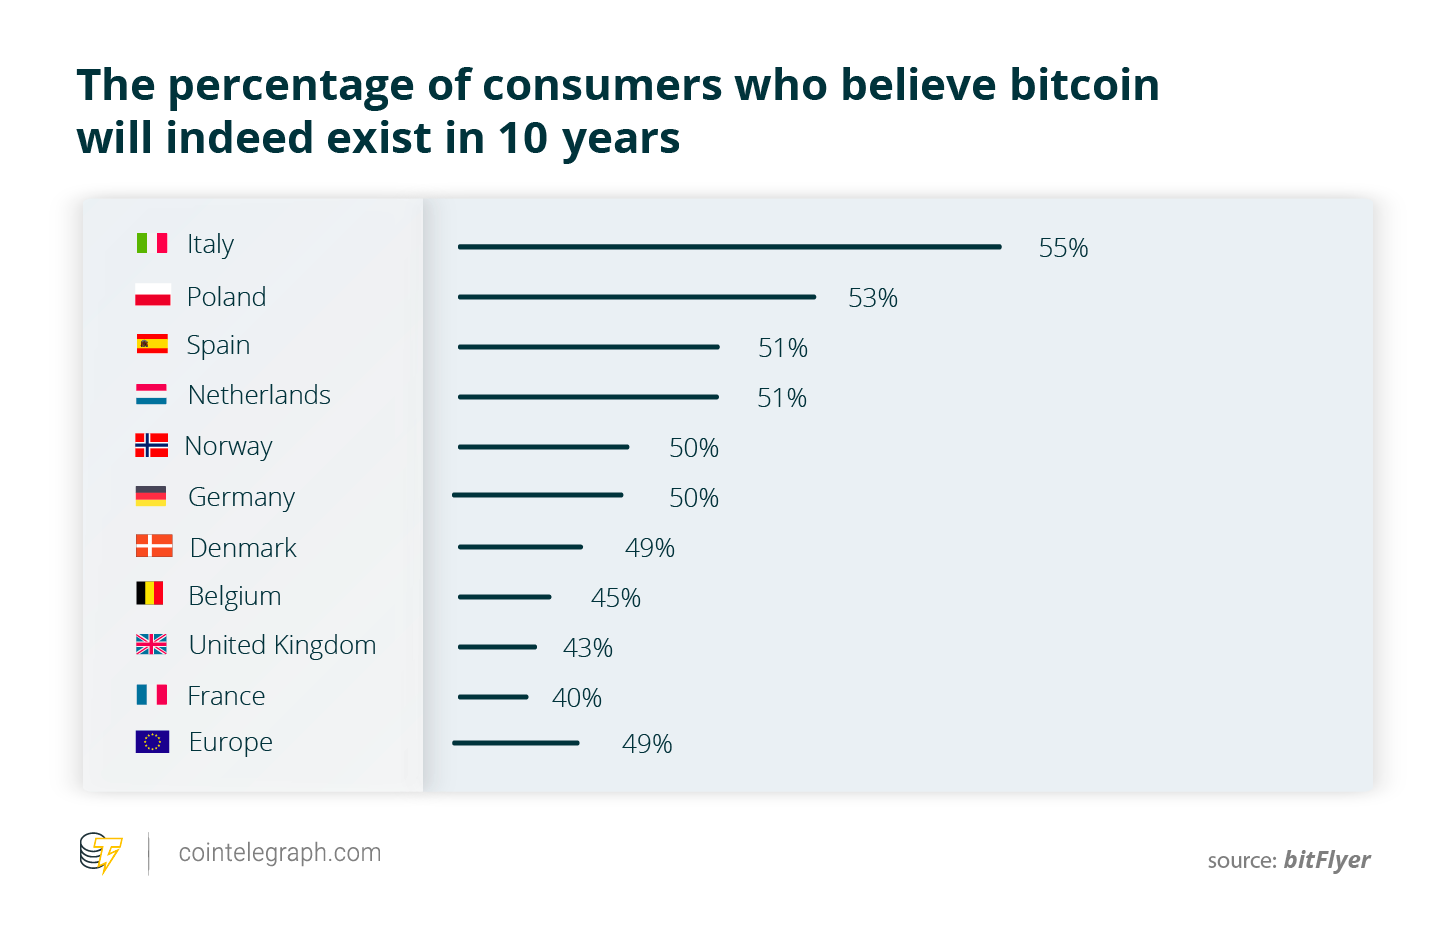 The percentage of consumers who believe bitcoin will indeed exist in 10 years